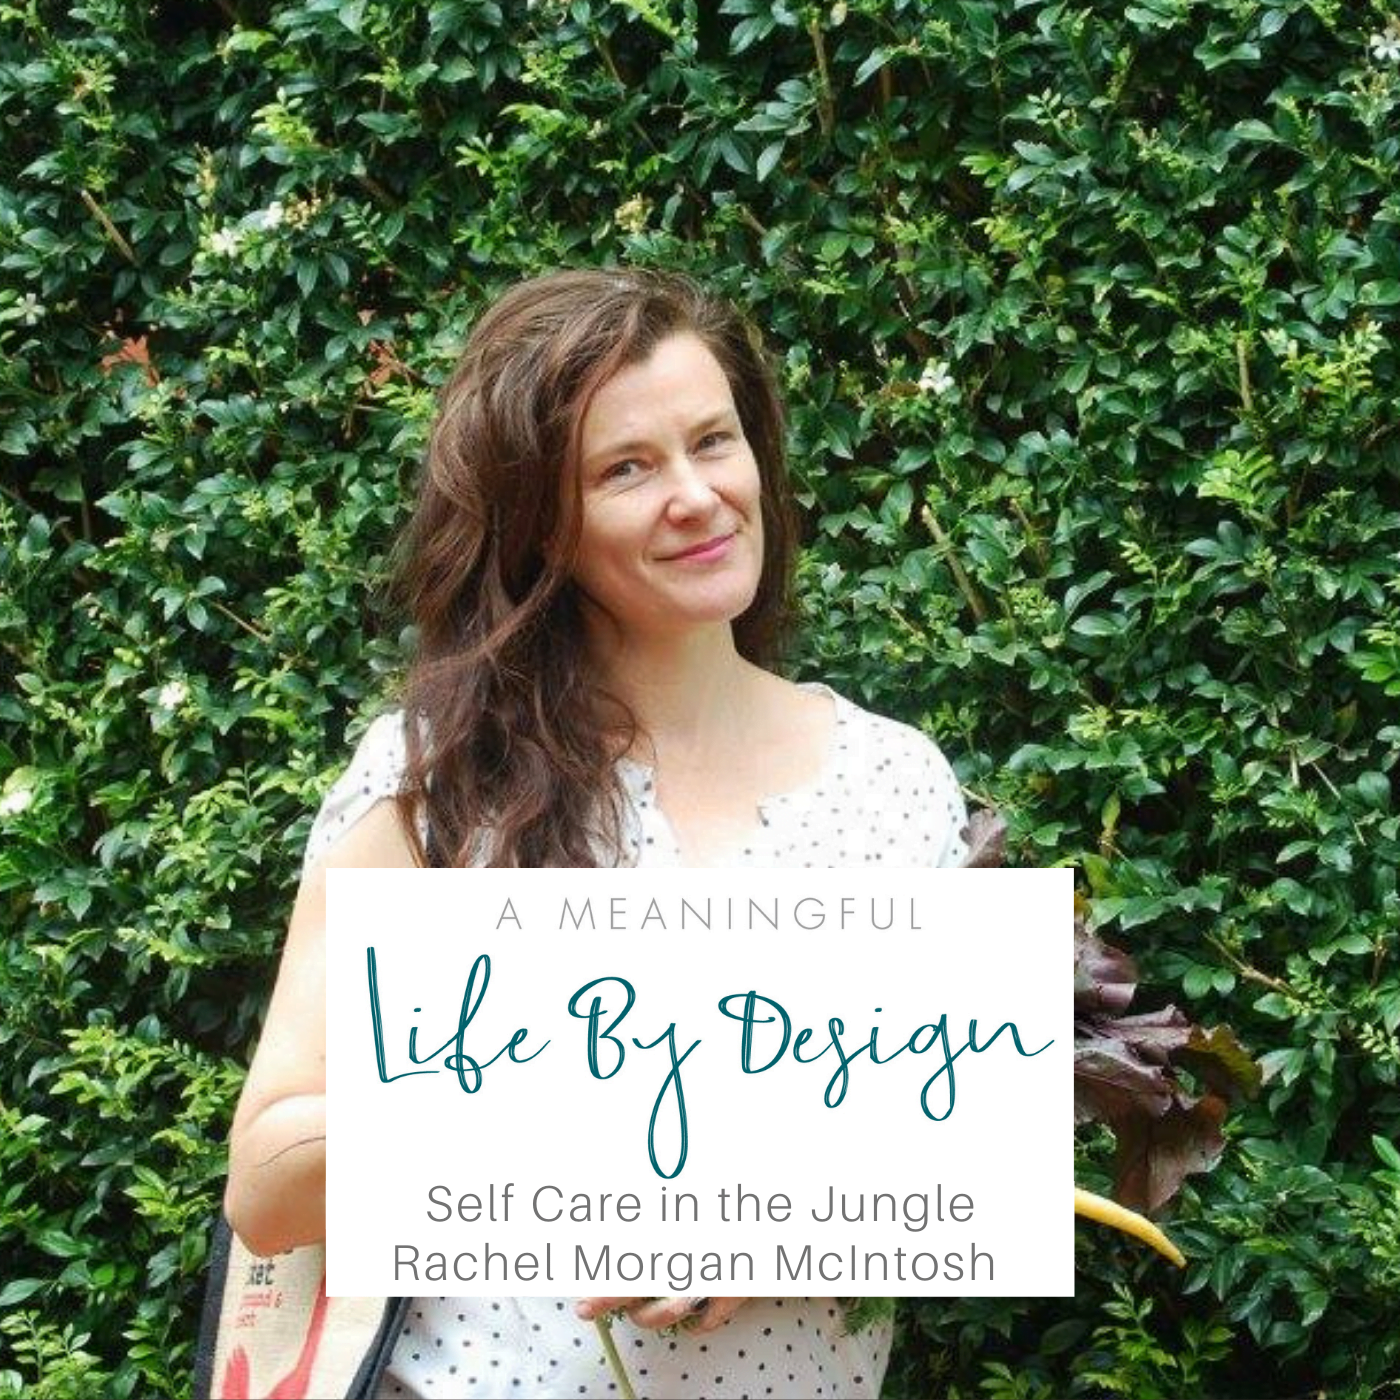 Rachel Mogan McIntosh Image for A Meaningful Life Design Podcast by Kylie Butler Episode 35 Self Care in the Jungle